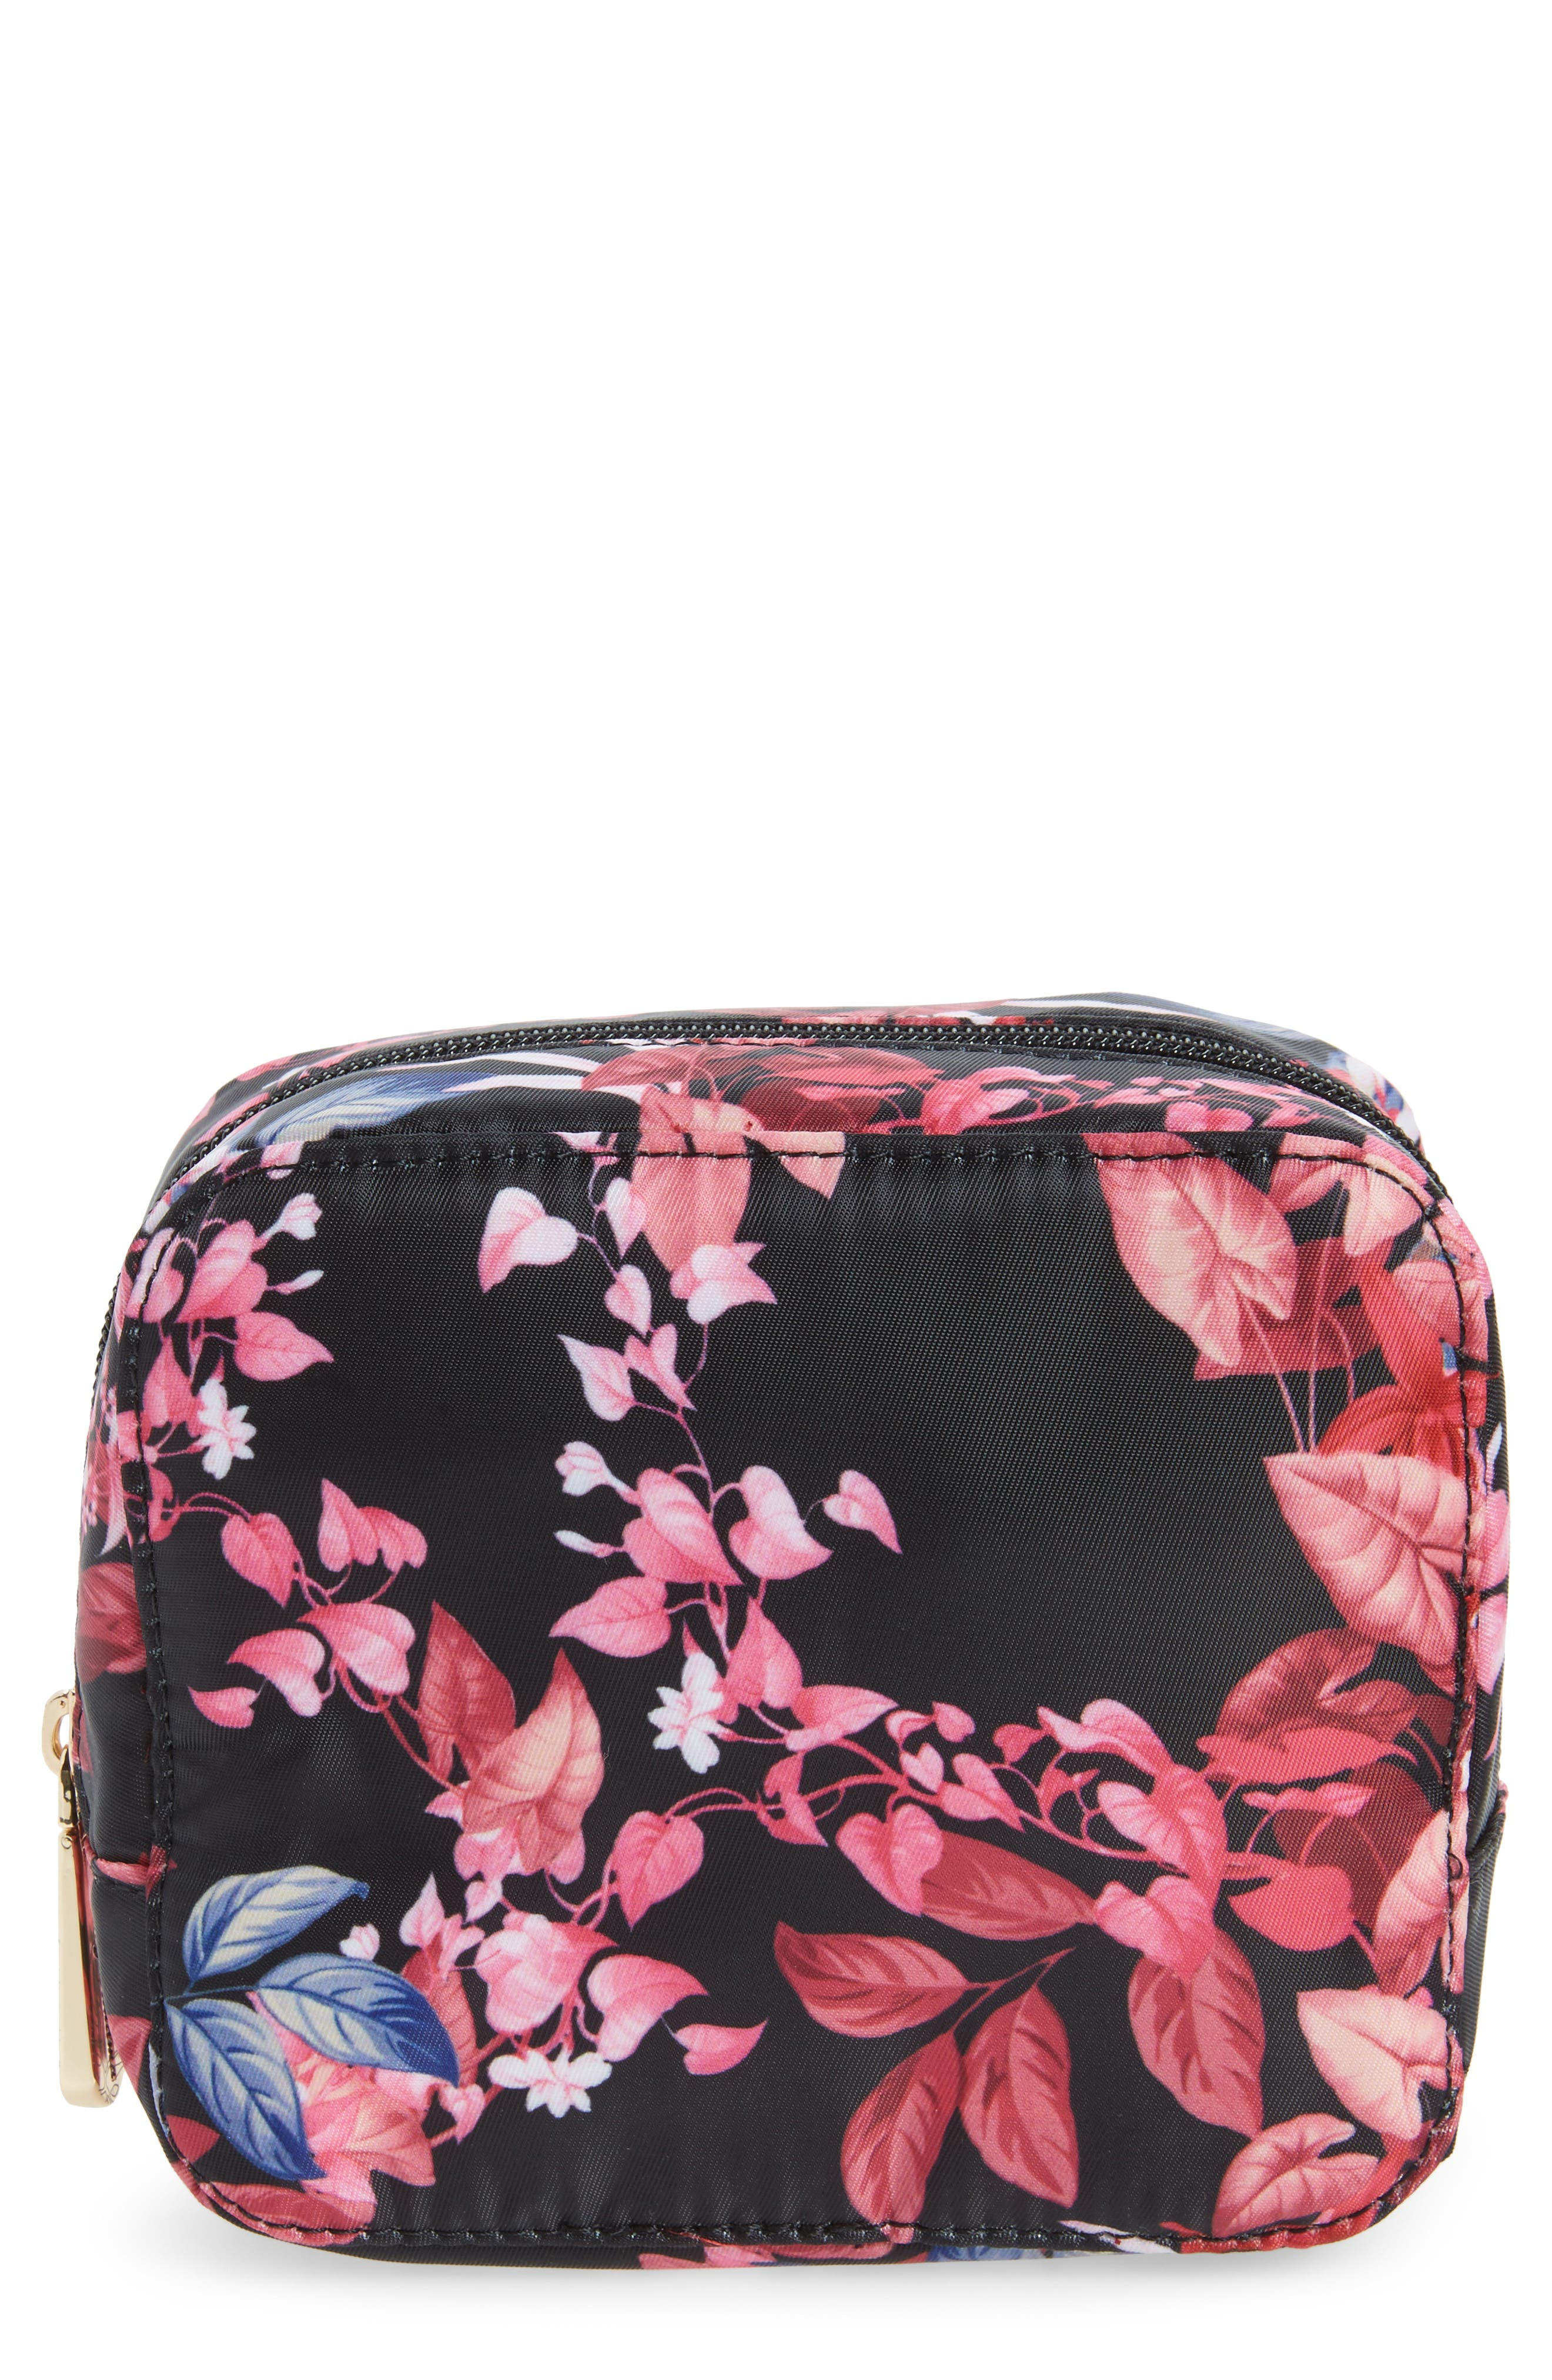 Up in the Air Cosmetics Case & Eye Mask,                             Main thumbnail 1, color,                             Fall Garden Part